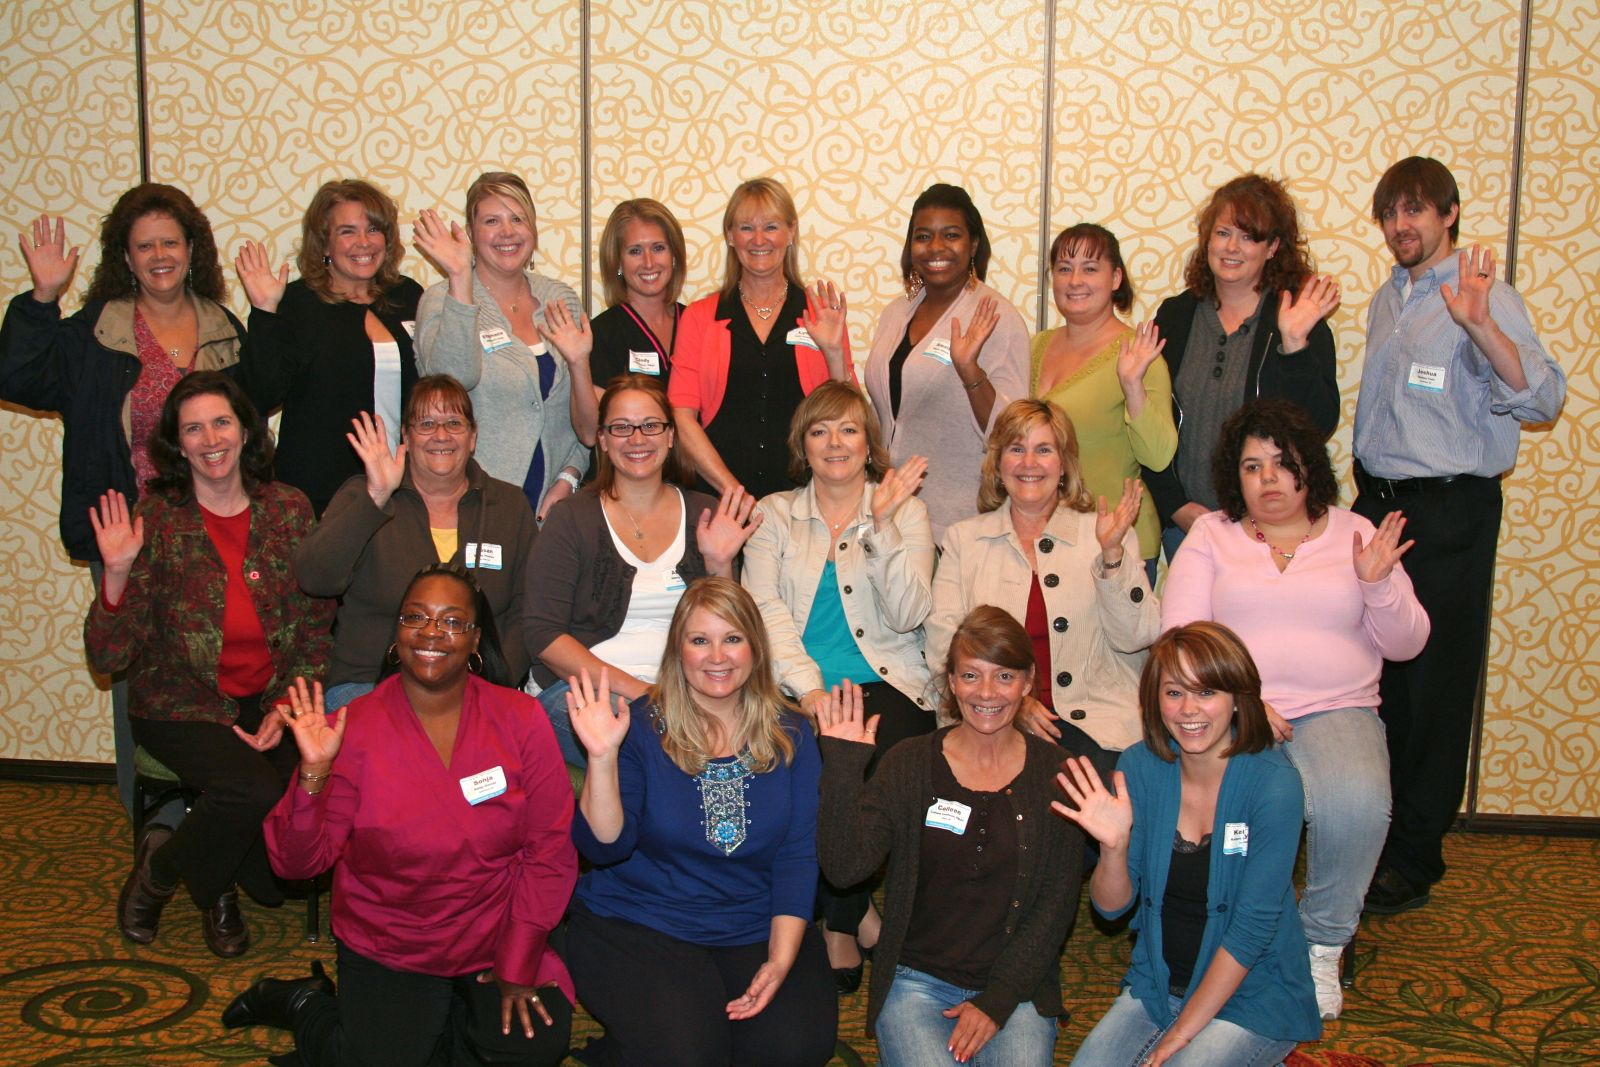 about our workshop sos healthcare management solutions 30 2011 troy michigan attendees 16 2011